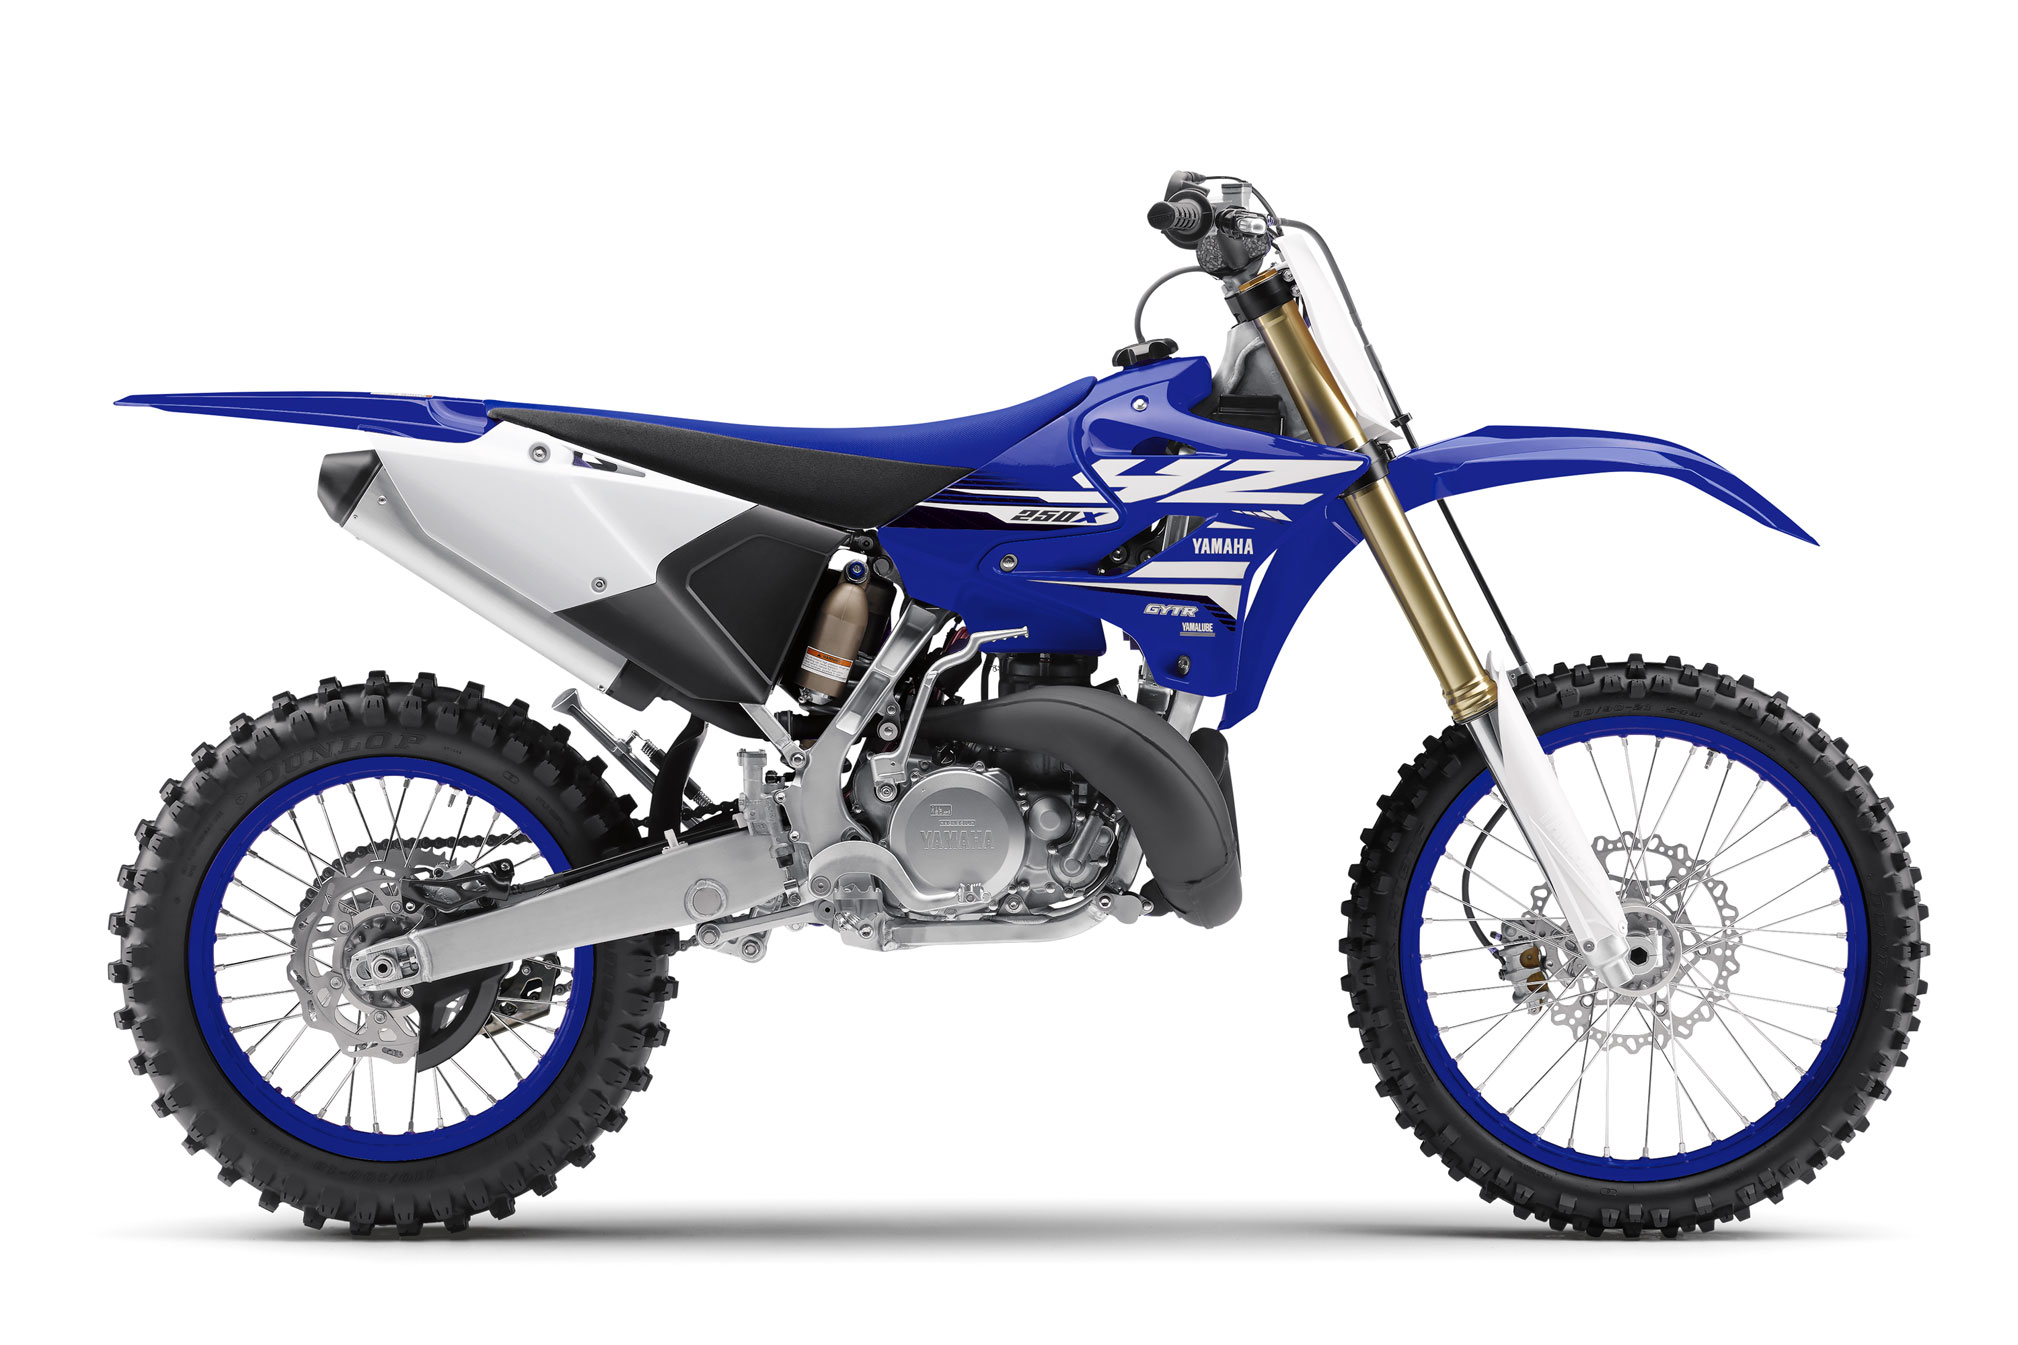 2018 yamaha yz250x review totalmotorcycle for 2018 yamaha yz250